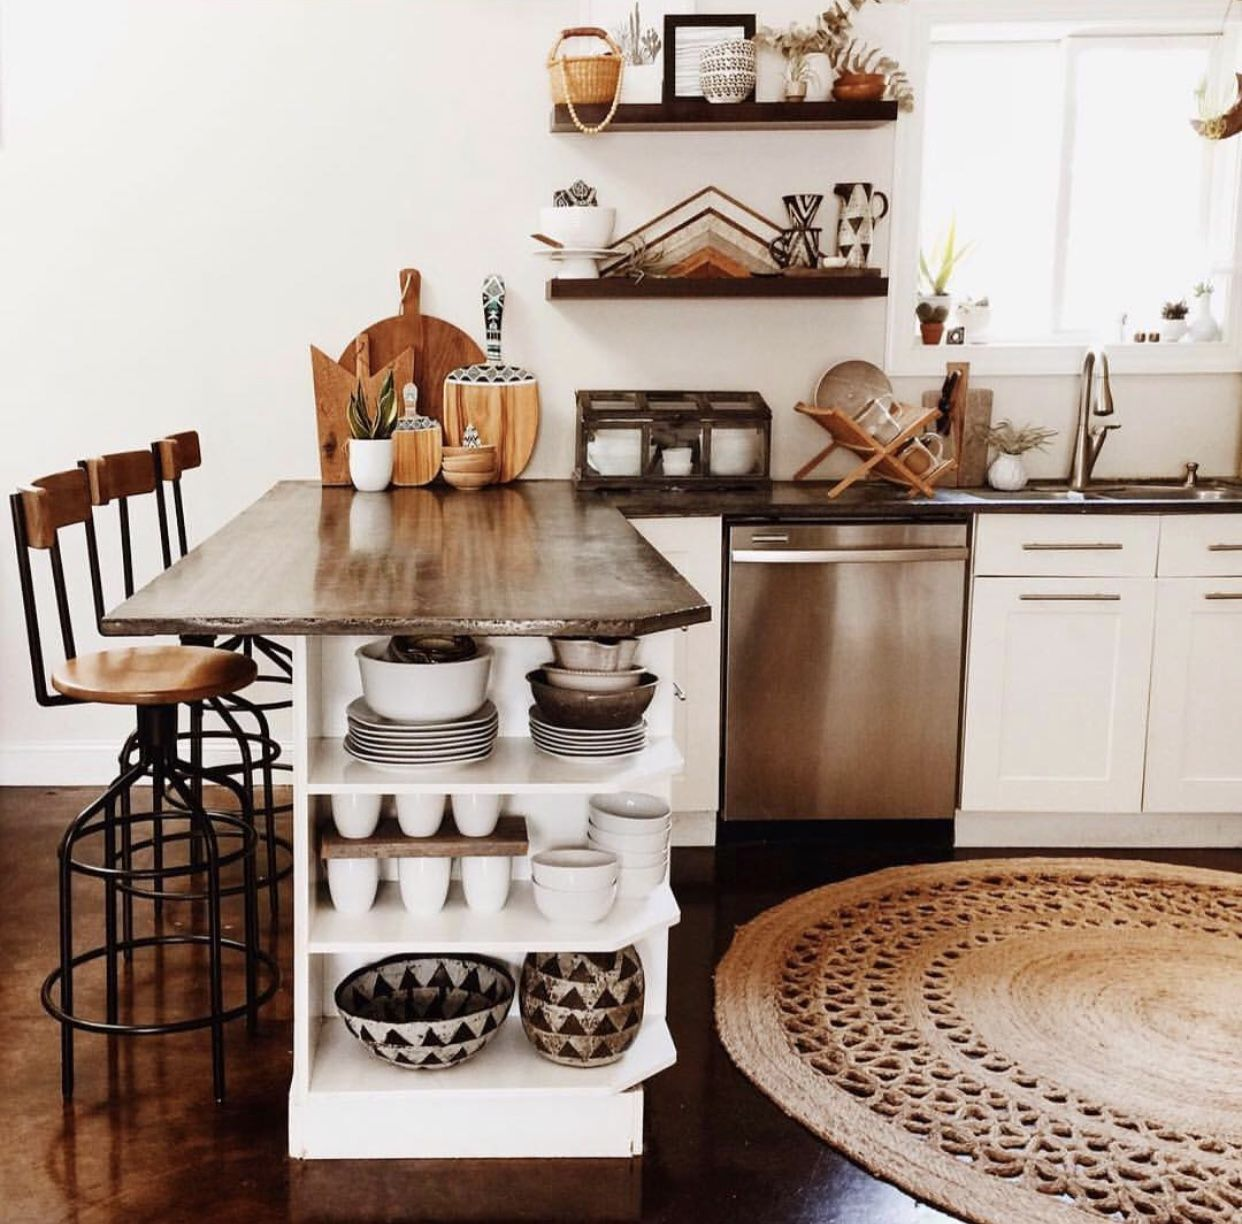 Pin By Shantelle Harker On Kitchen Home Kitchens Home Decor